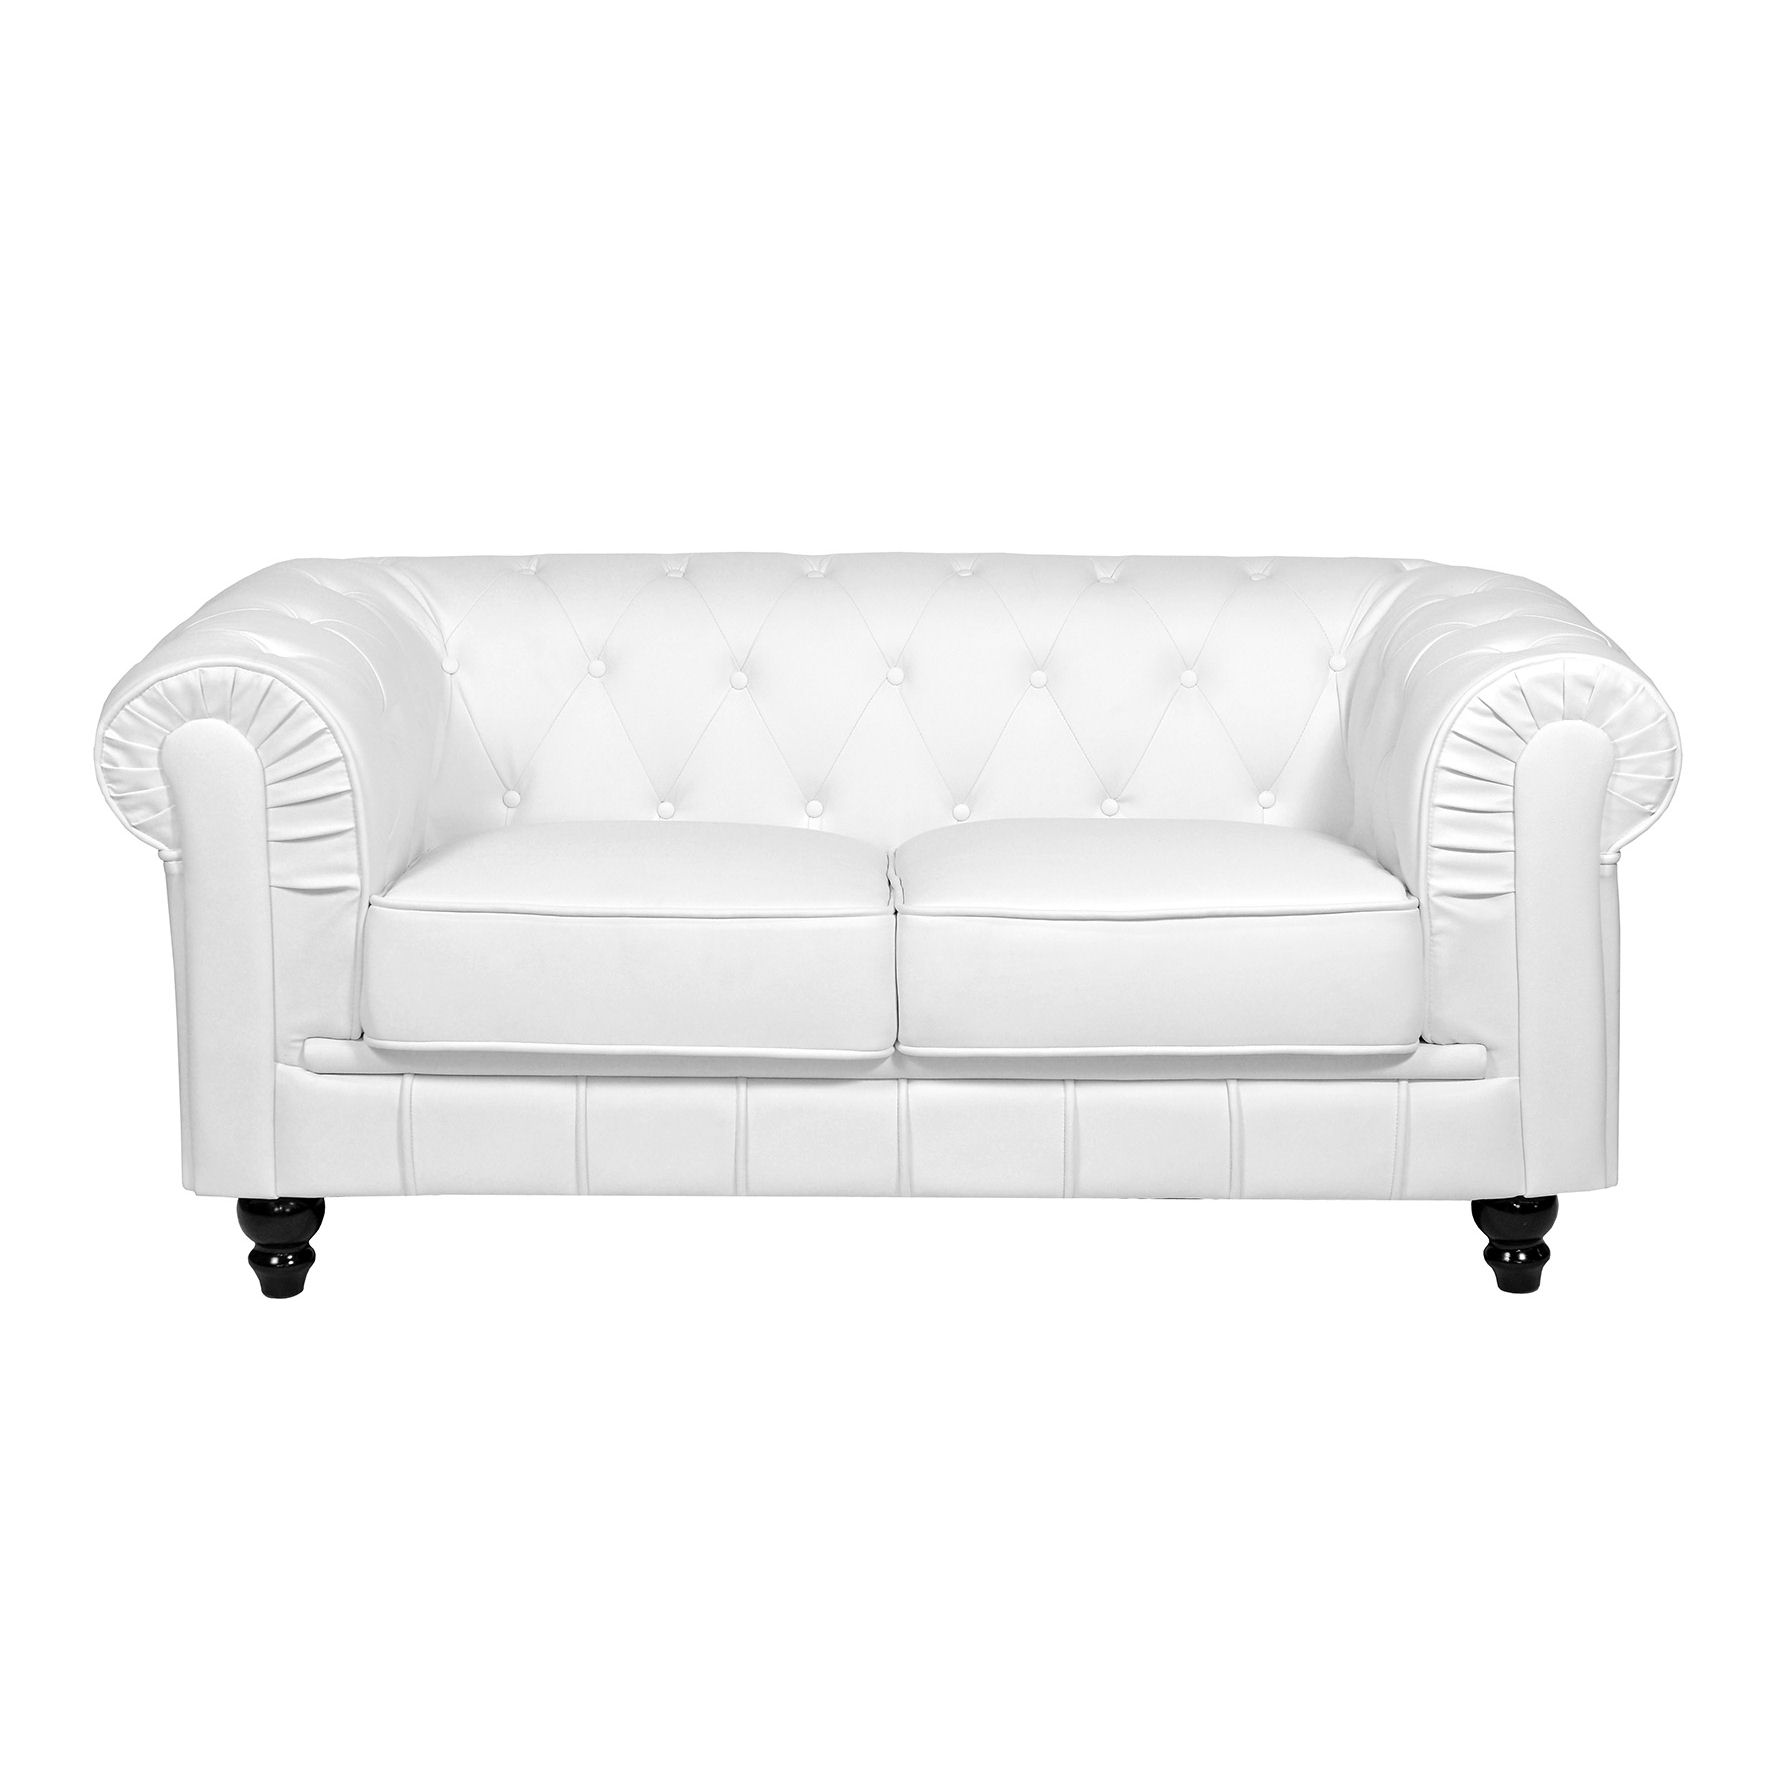 Deco in paris canape 2 places blanc chesterfield can for Canape enfant 2 places